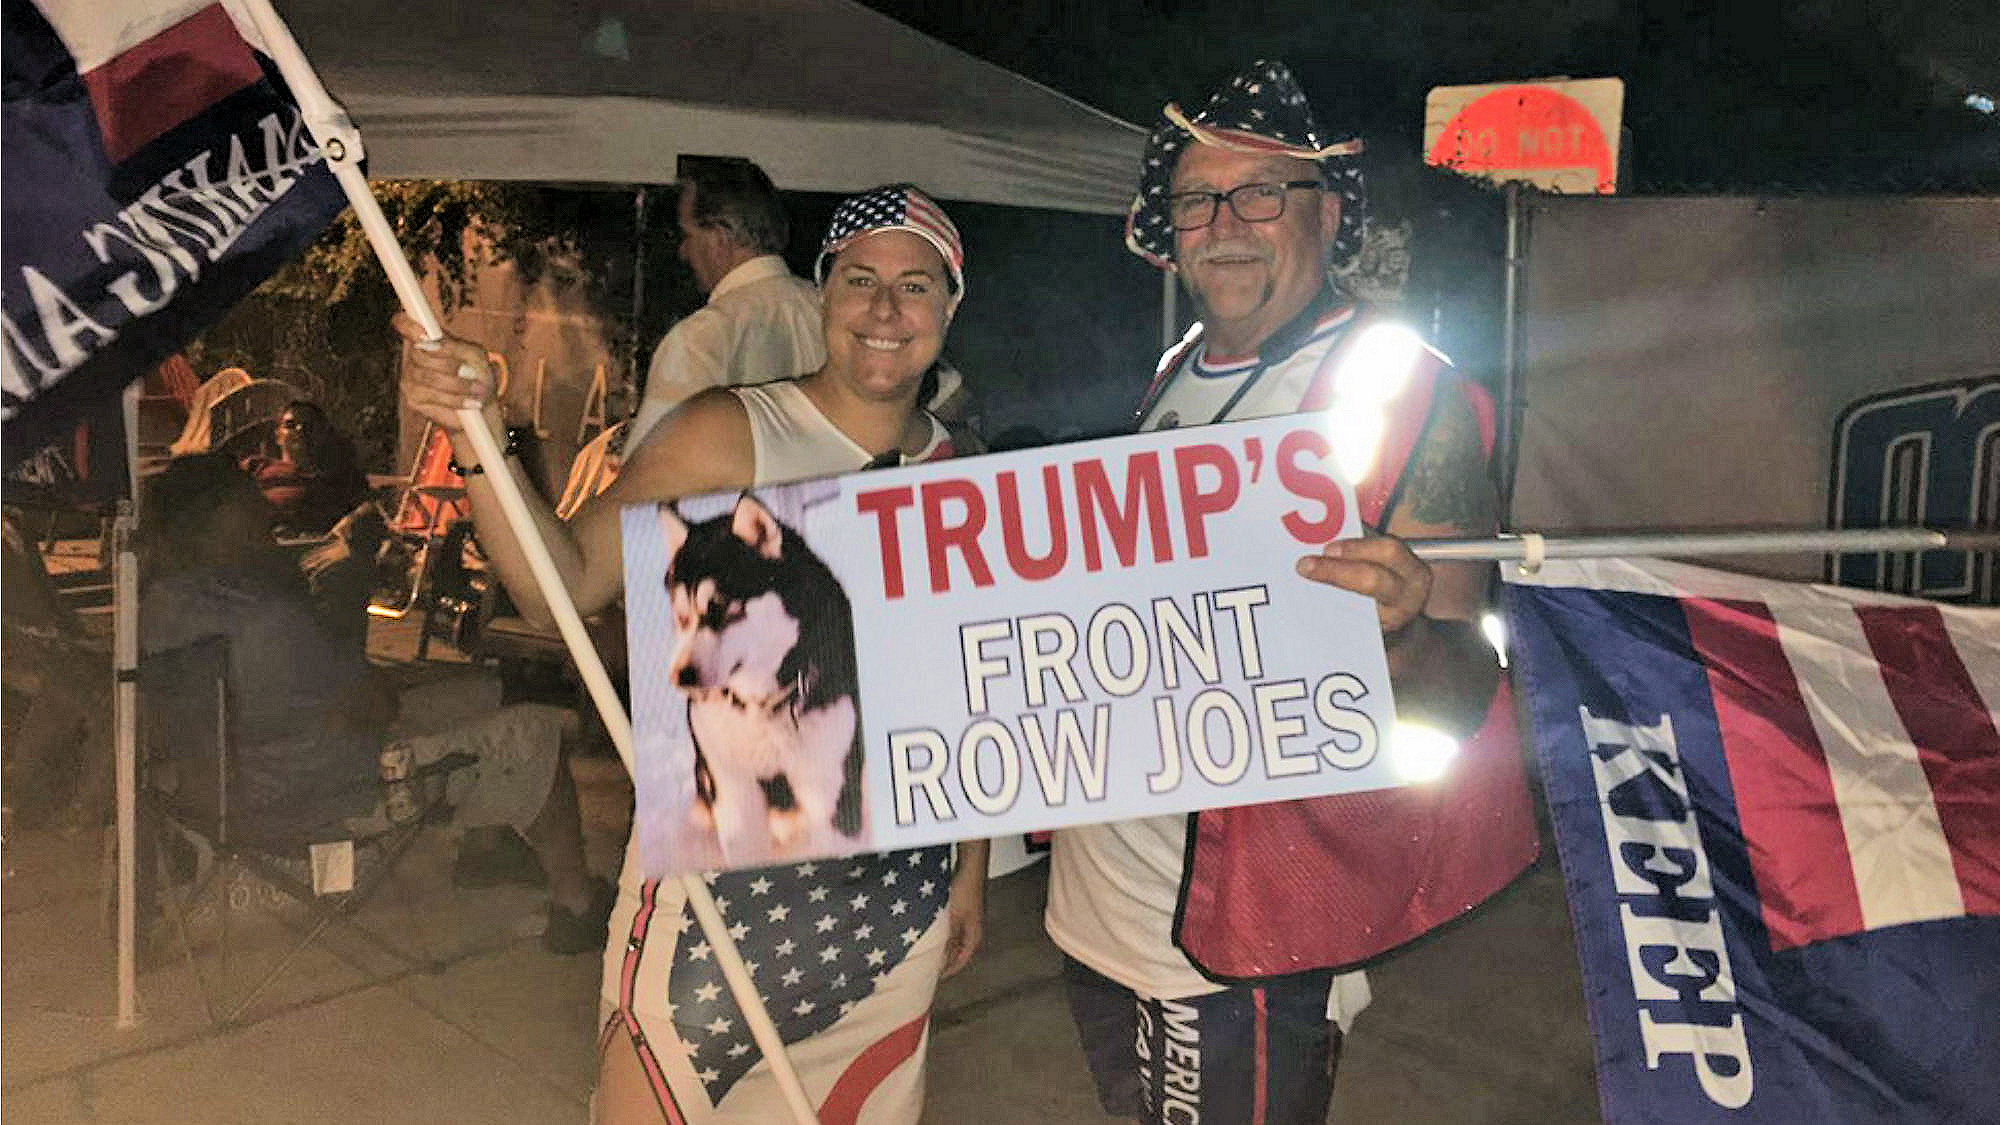 nightime camping out Trump 2020 rally Orlando